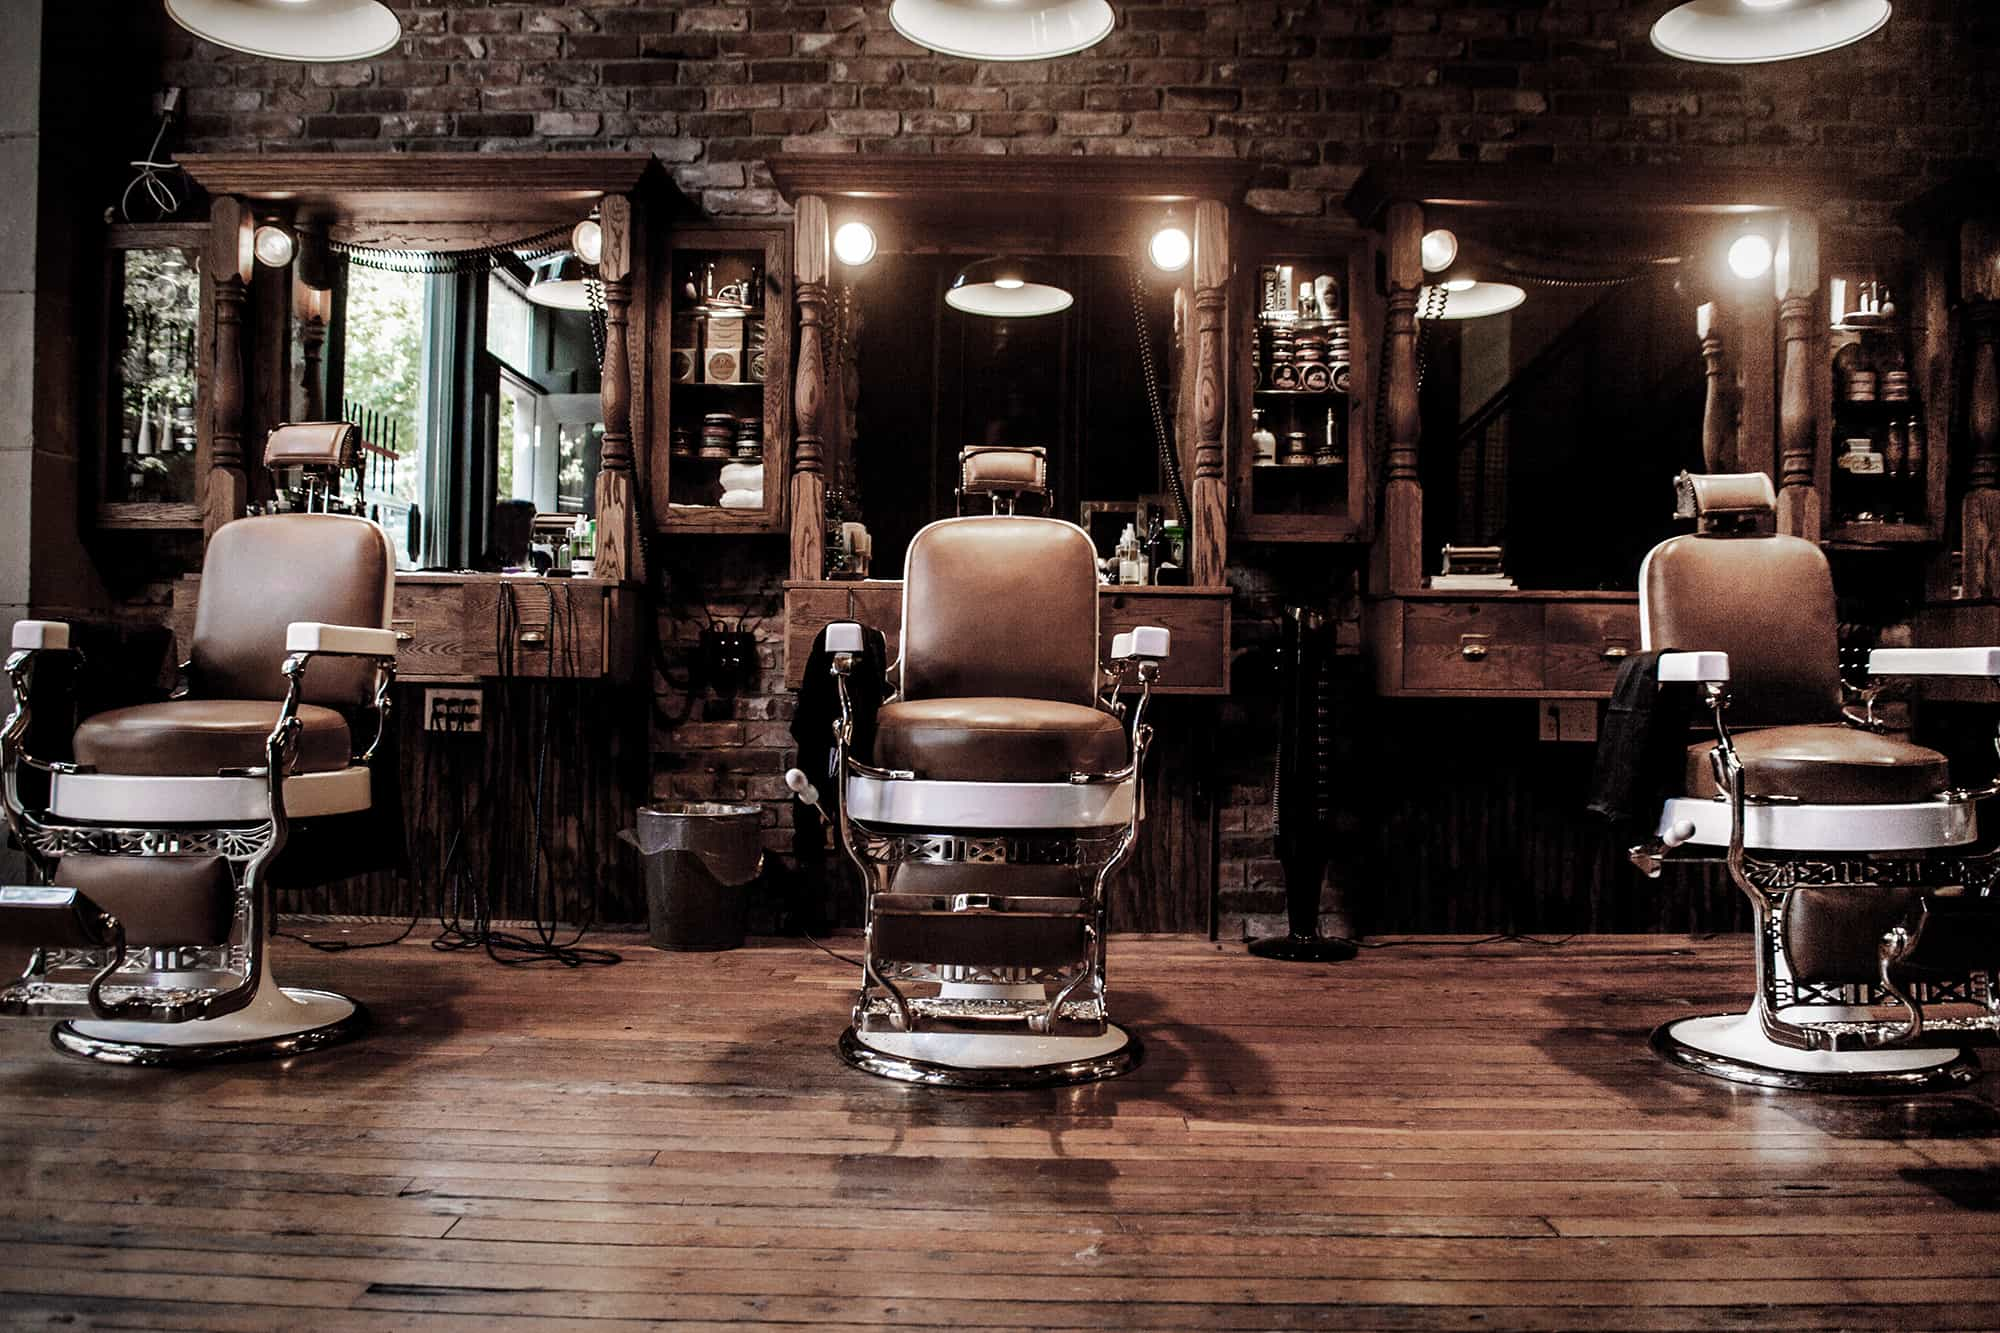 Cosmetology – hobbies for men